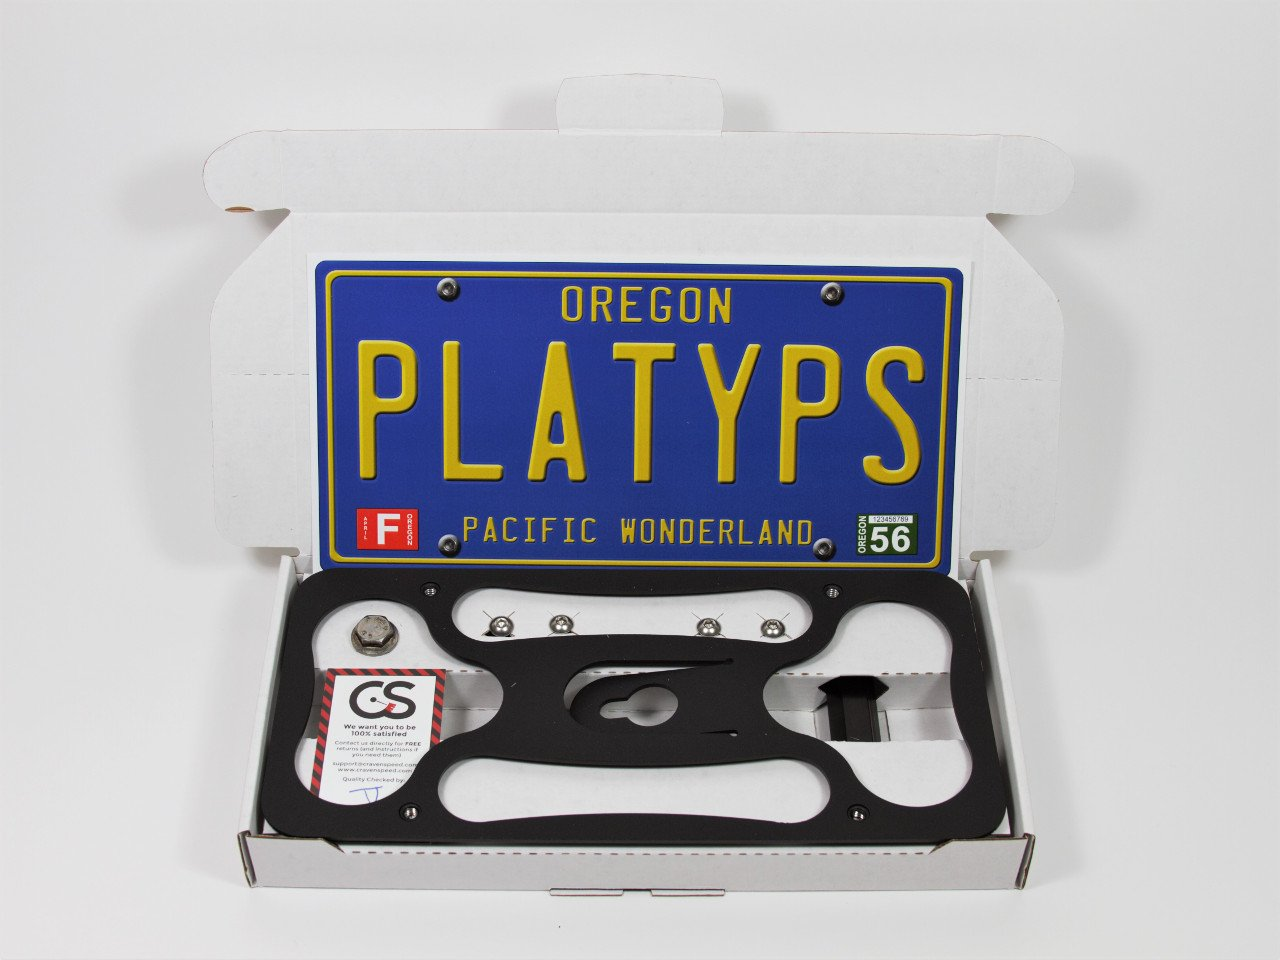 No Drilling CravenSpeed The Platypus License Plate Mount for Scion FR-S 2012-2016 Made of Stainless Steel /& Aluminum Installs in Seconds Made in USA